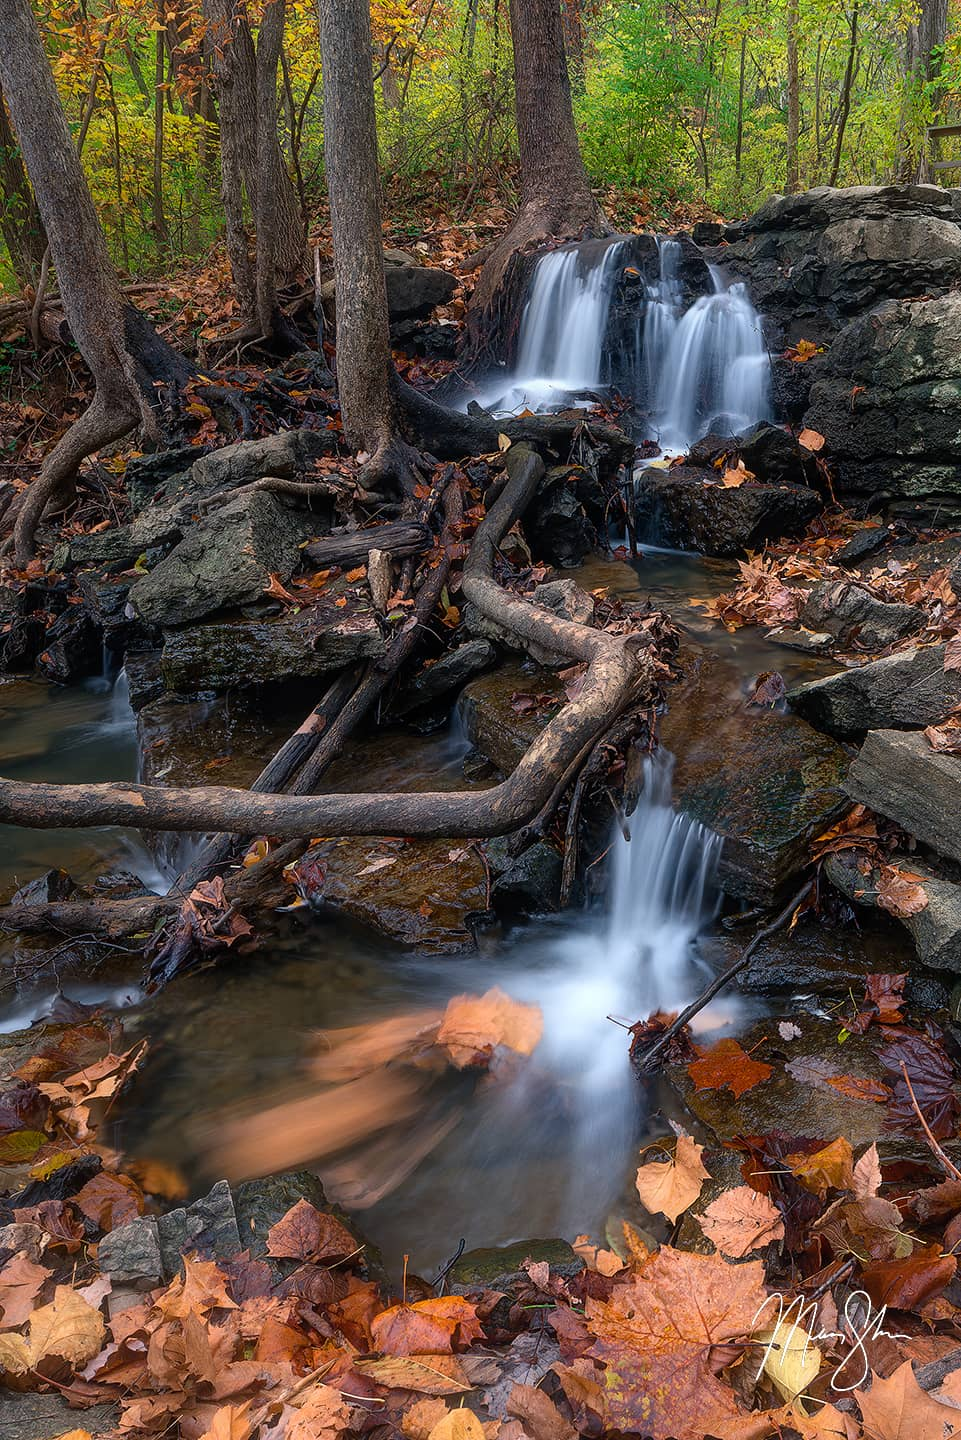 Open edition fine art print of Parkville Autumn Falls from Mickey Shannon Photography. Location: Parkville, Missouri